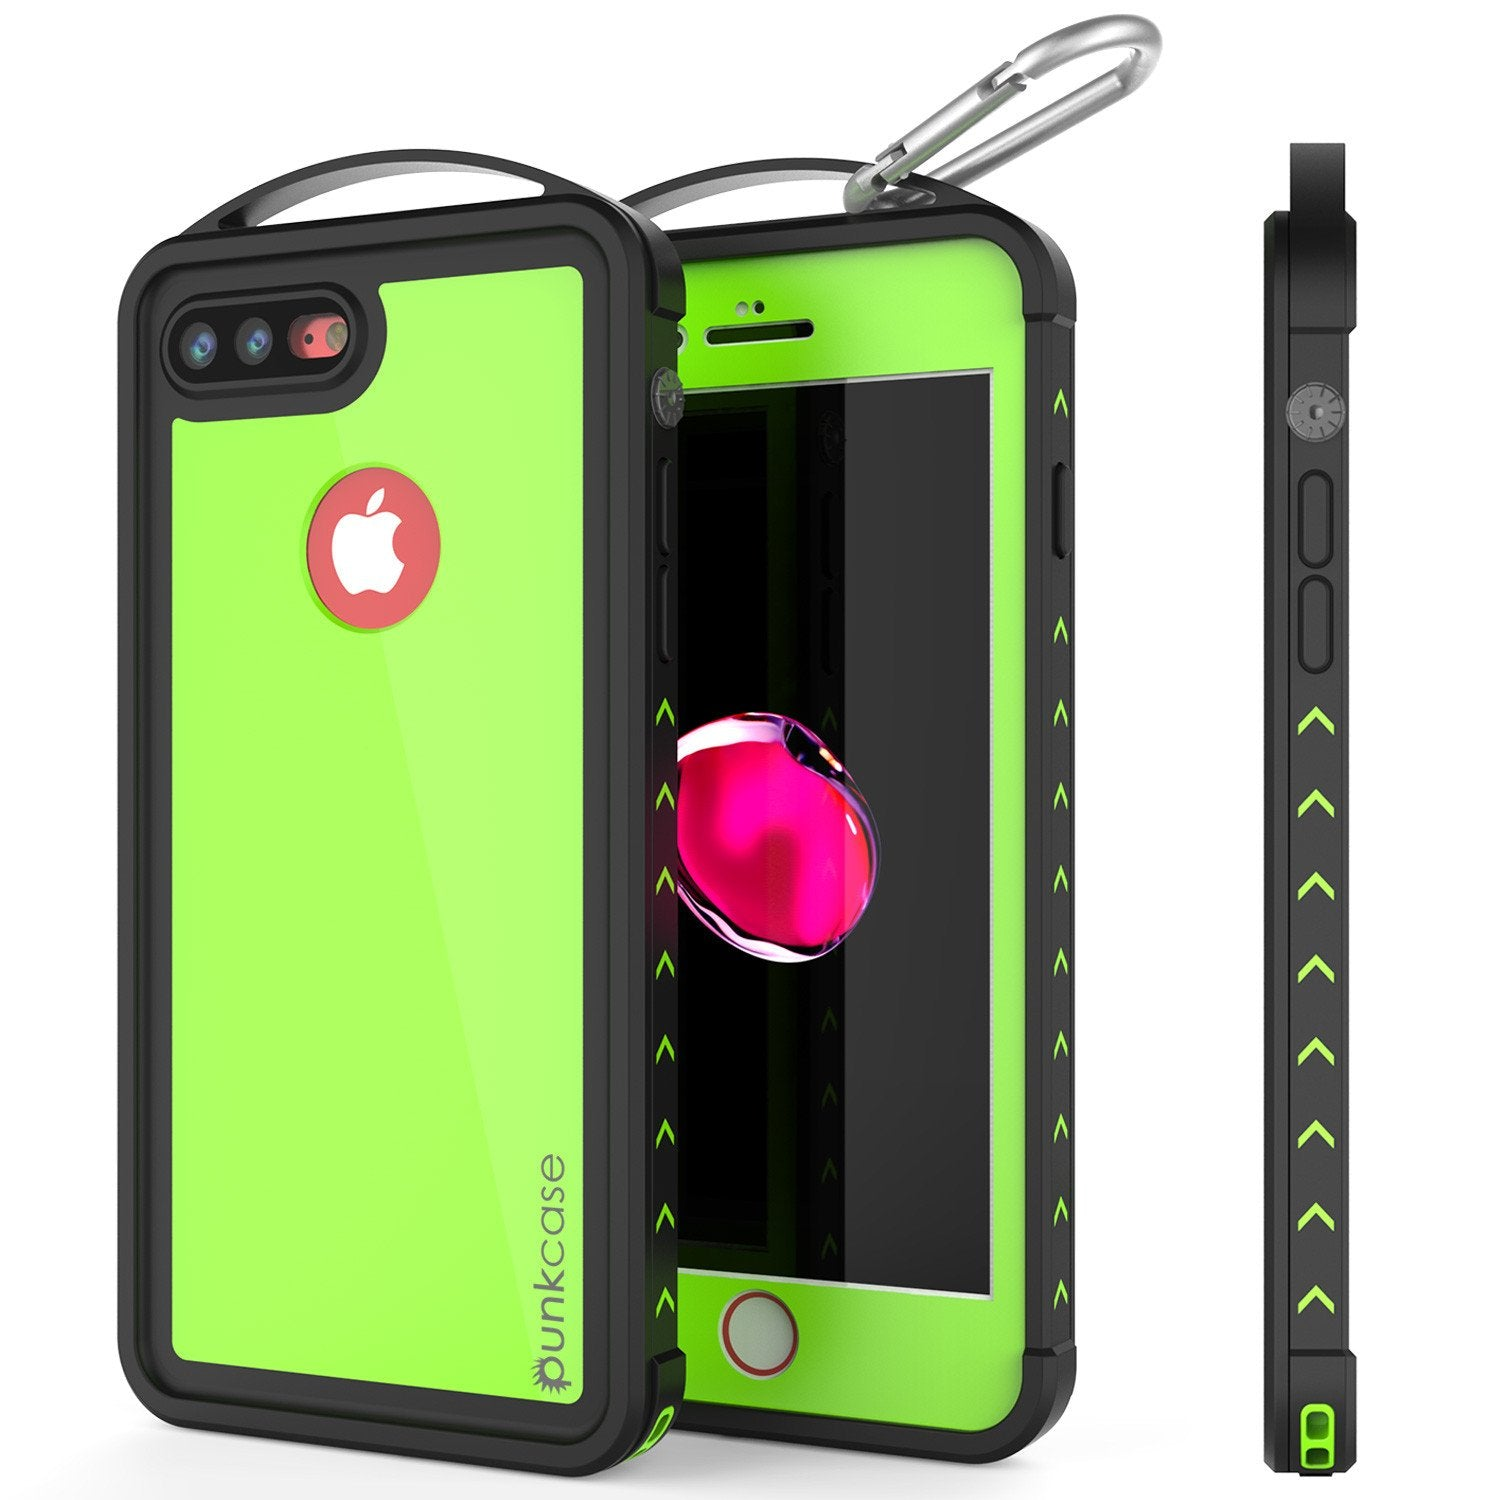 iPhone 7+ Plus Waterproof Case, Punkcase ALPINE Series, Light Green | Heavy Duty Armor Cover